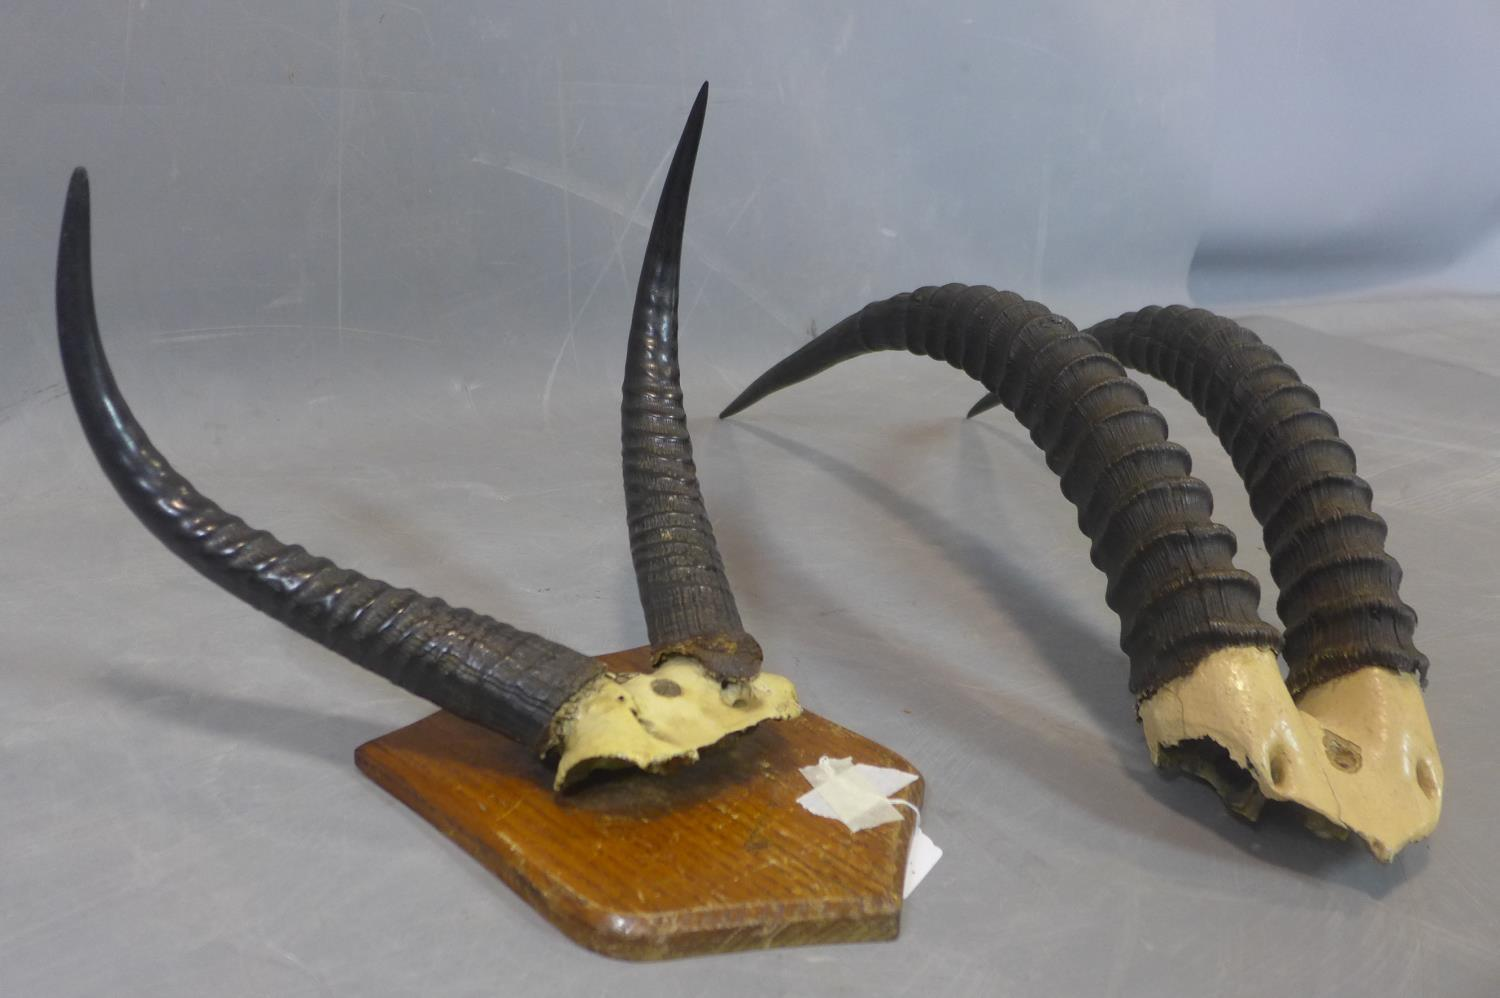 Lot 191 - Antelope antlers mounted on an oak shield, bearing label for 'G.A. Topp, Taxidermist, London